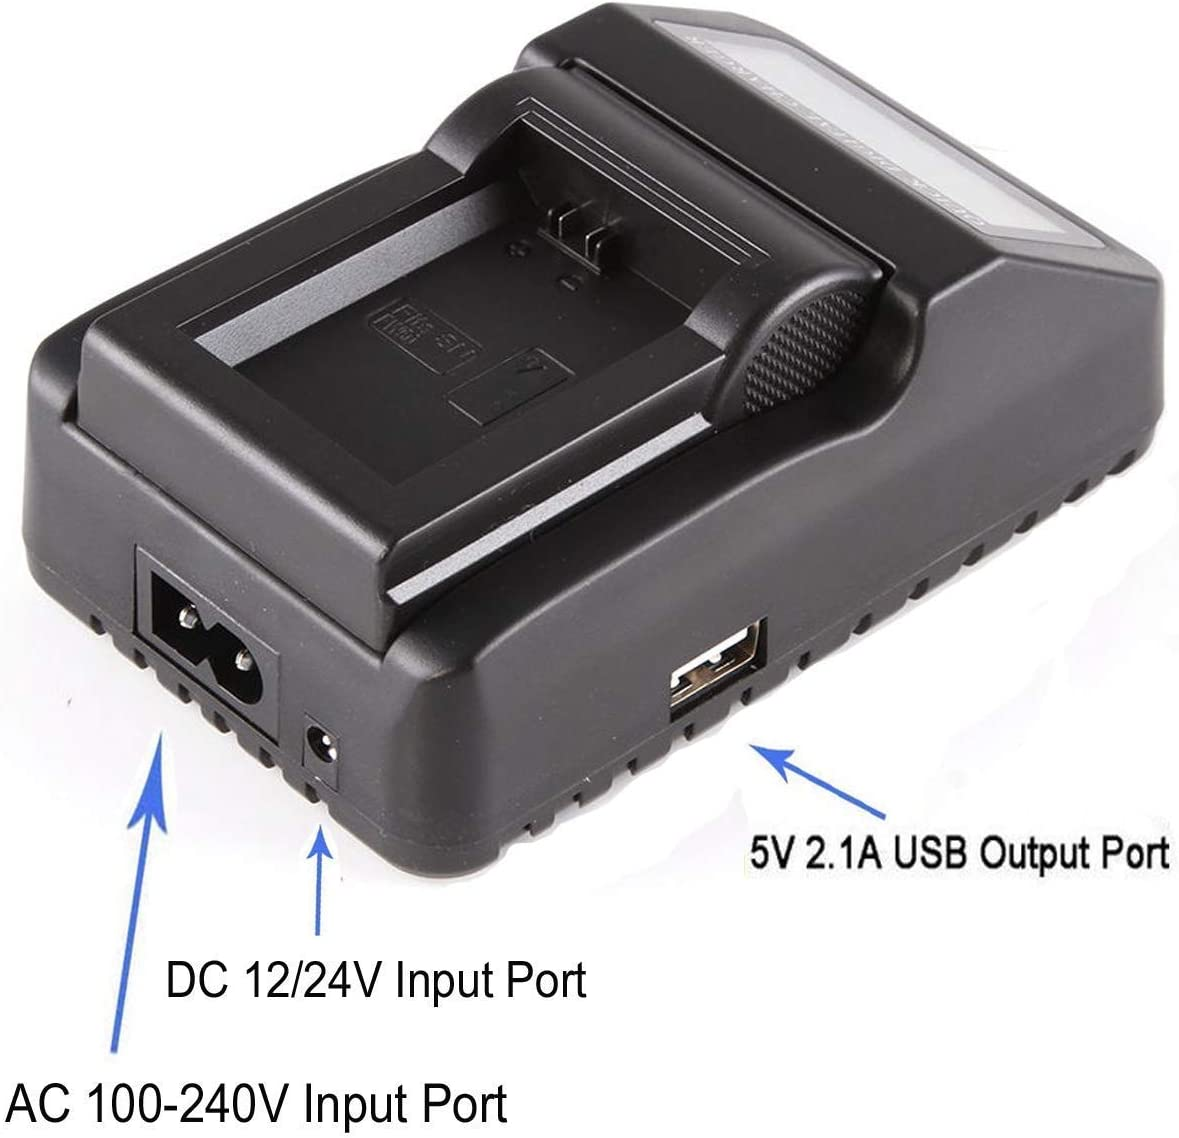 HDR-PJ380 Battery Charger for Sony HDR-PJ320 HDR-PJ330 HDR-PJ350 HDR-PJ390 Handycam Camcorder HDR-PJ340